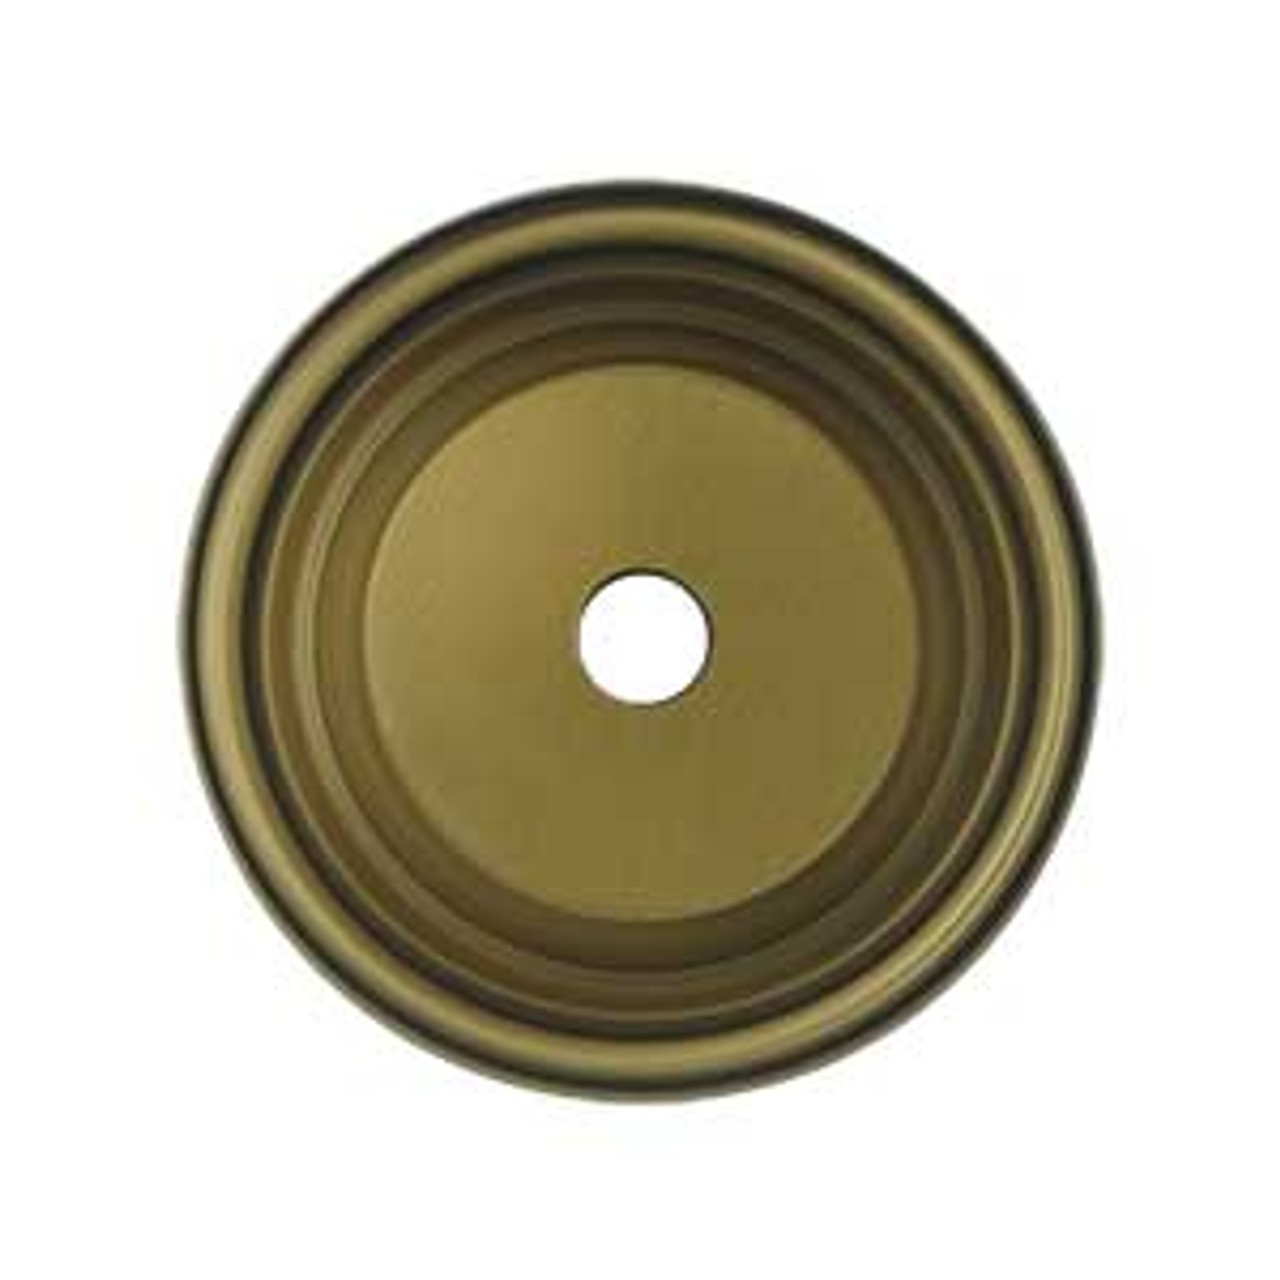 "1-1/2"" Dia. Round Knob Backplate - Antique Brass (DELH-BPRC150U5)"